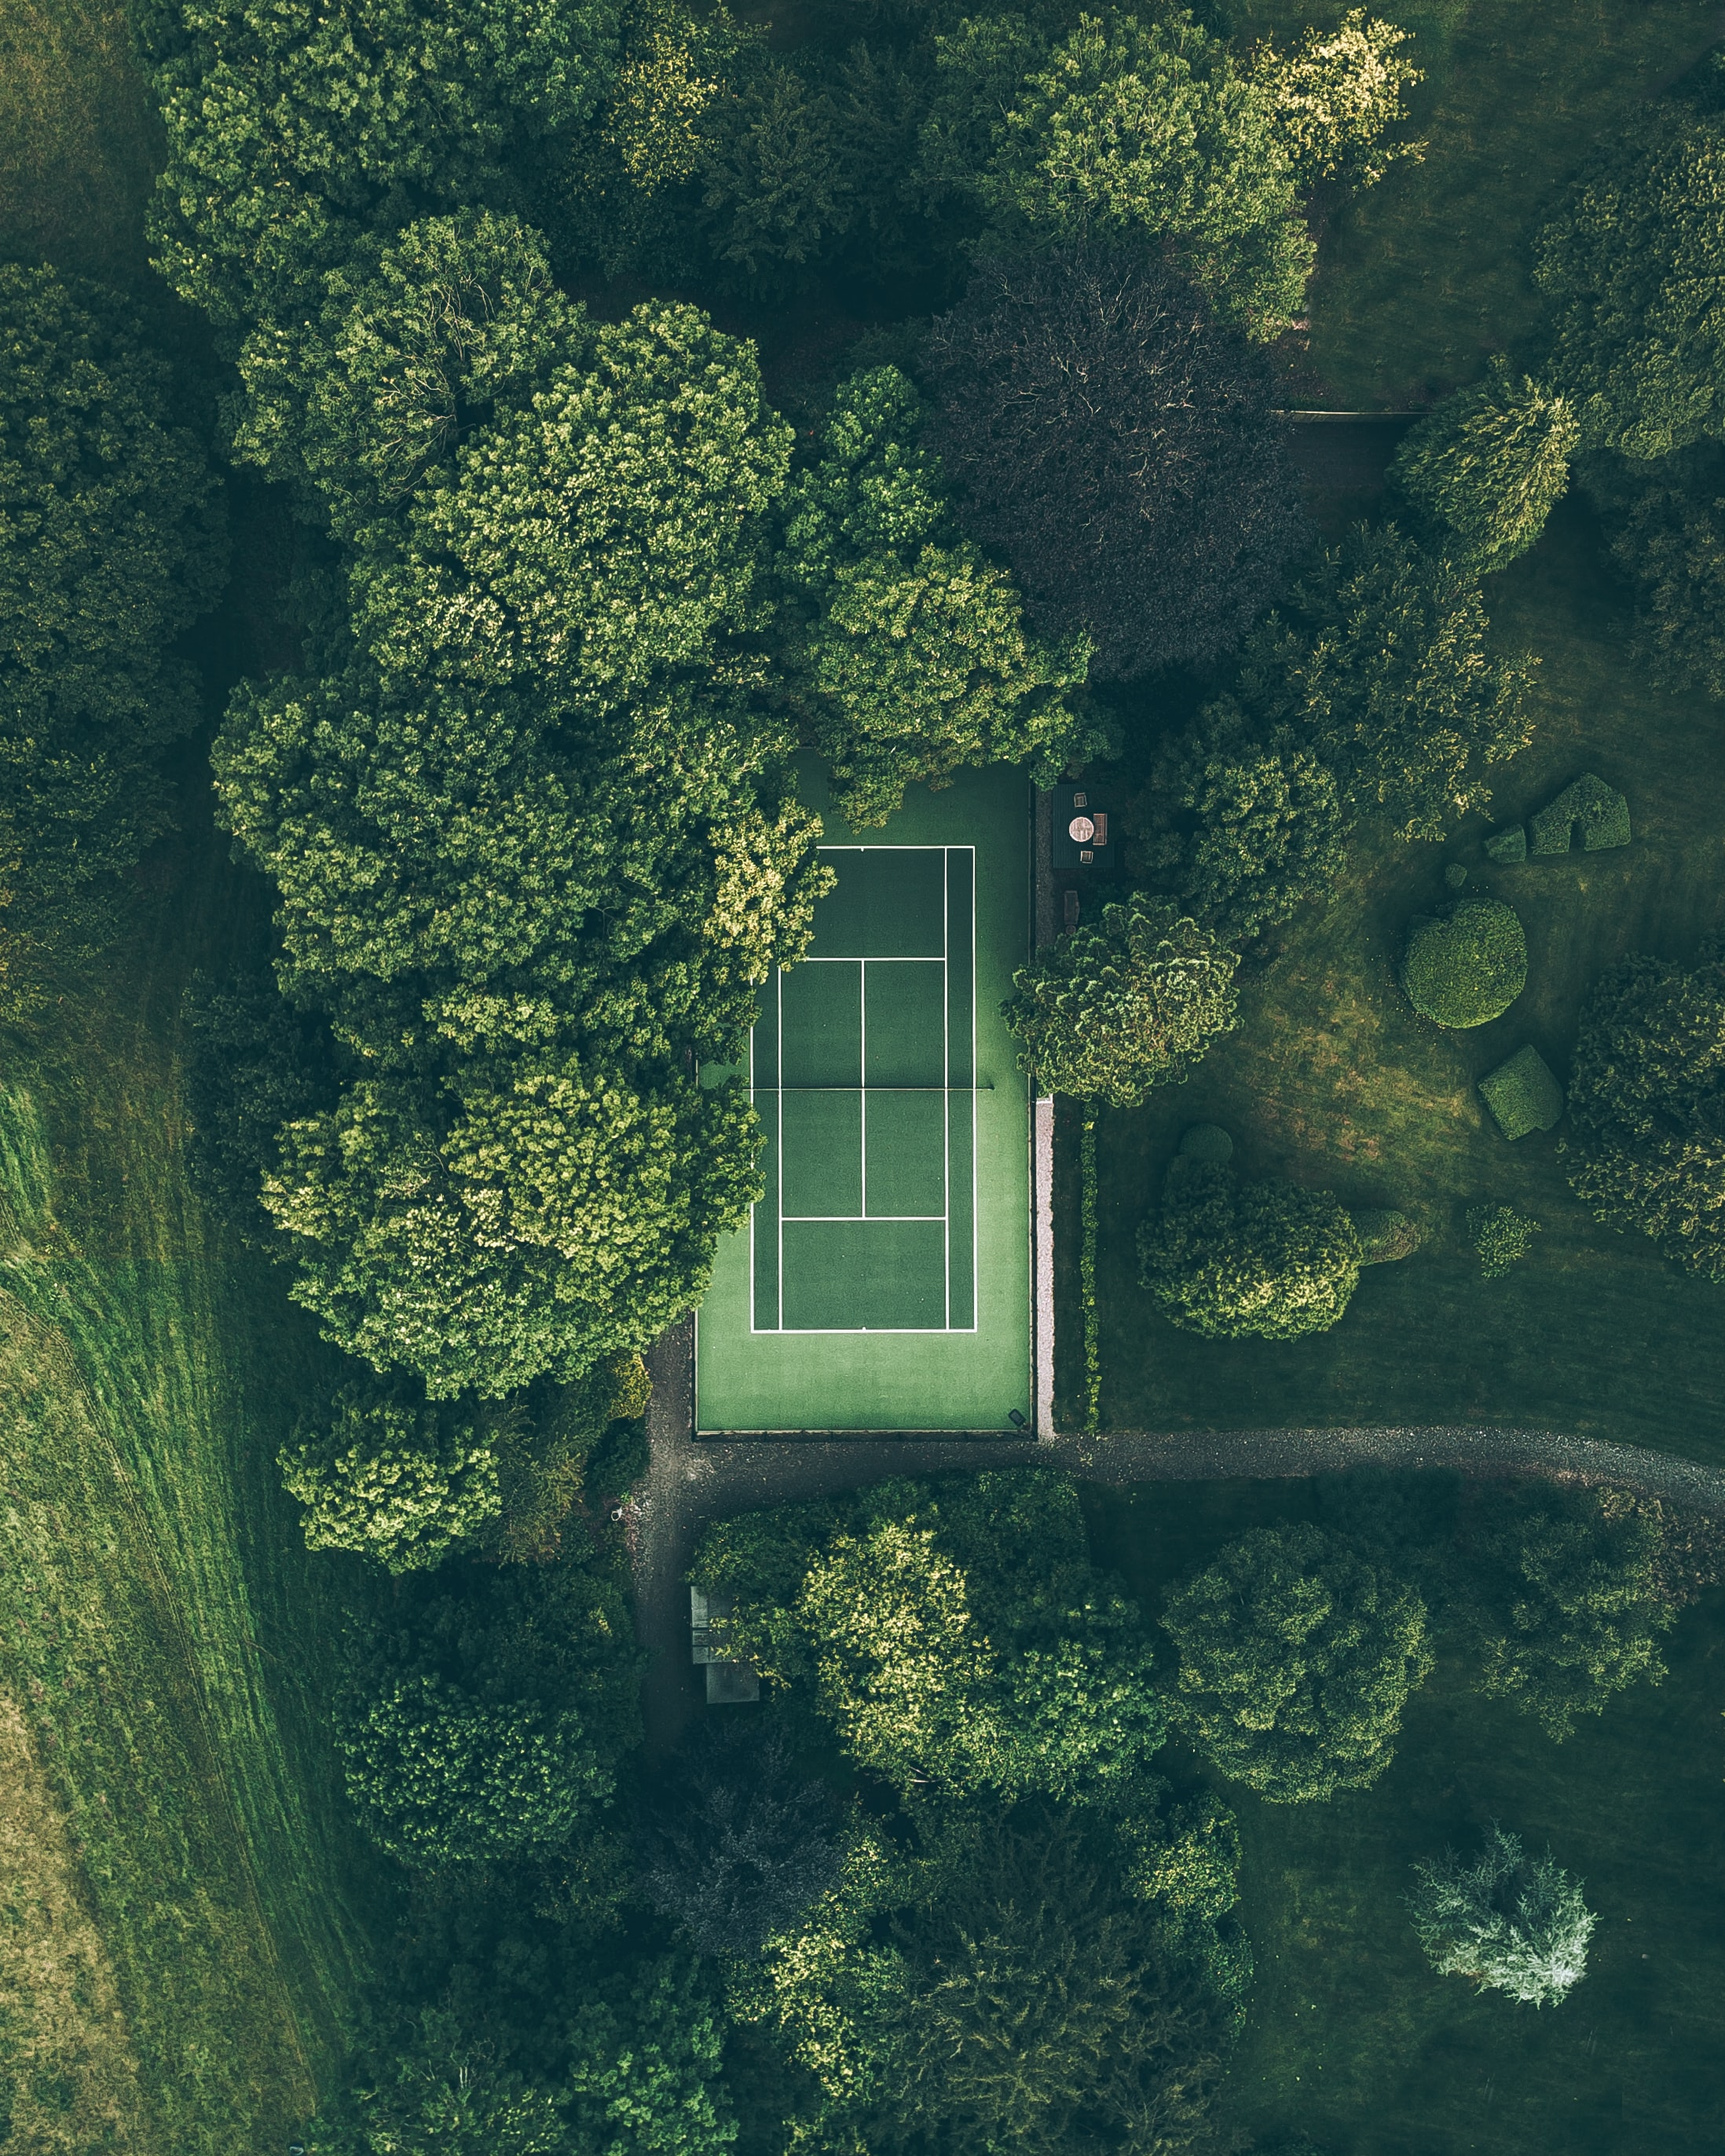 A drone shot of a green tennis court surrounded by trees in Frampton, England